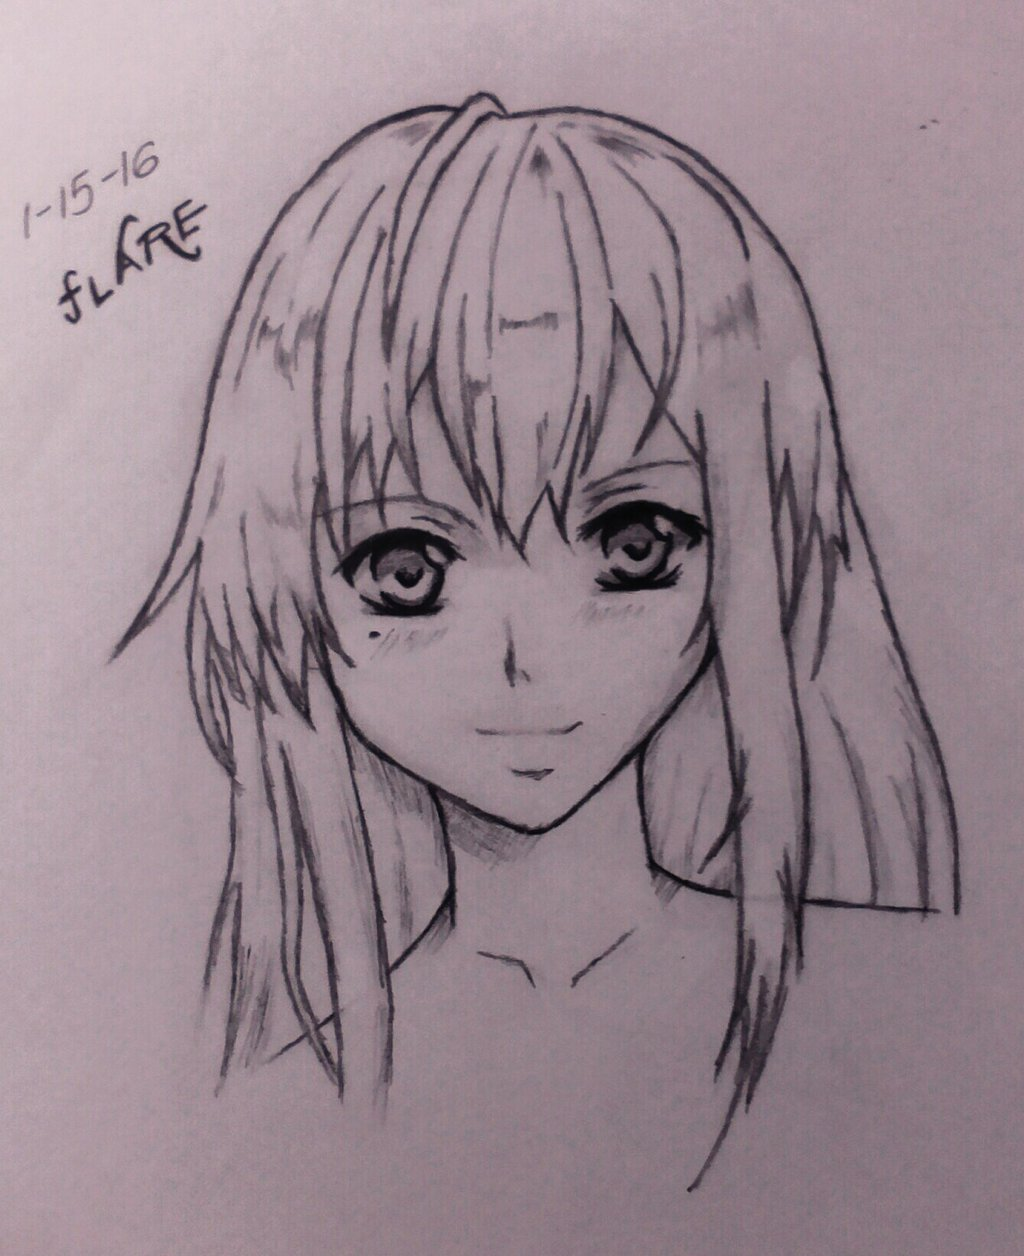 1024x1256 anime girl drawing by flare029 on DeviantArt